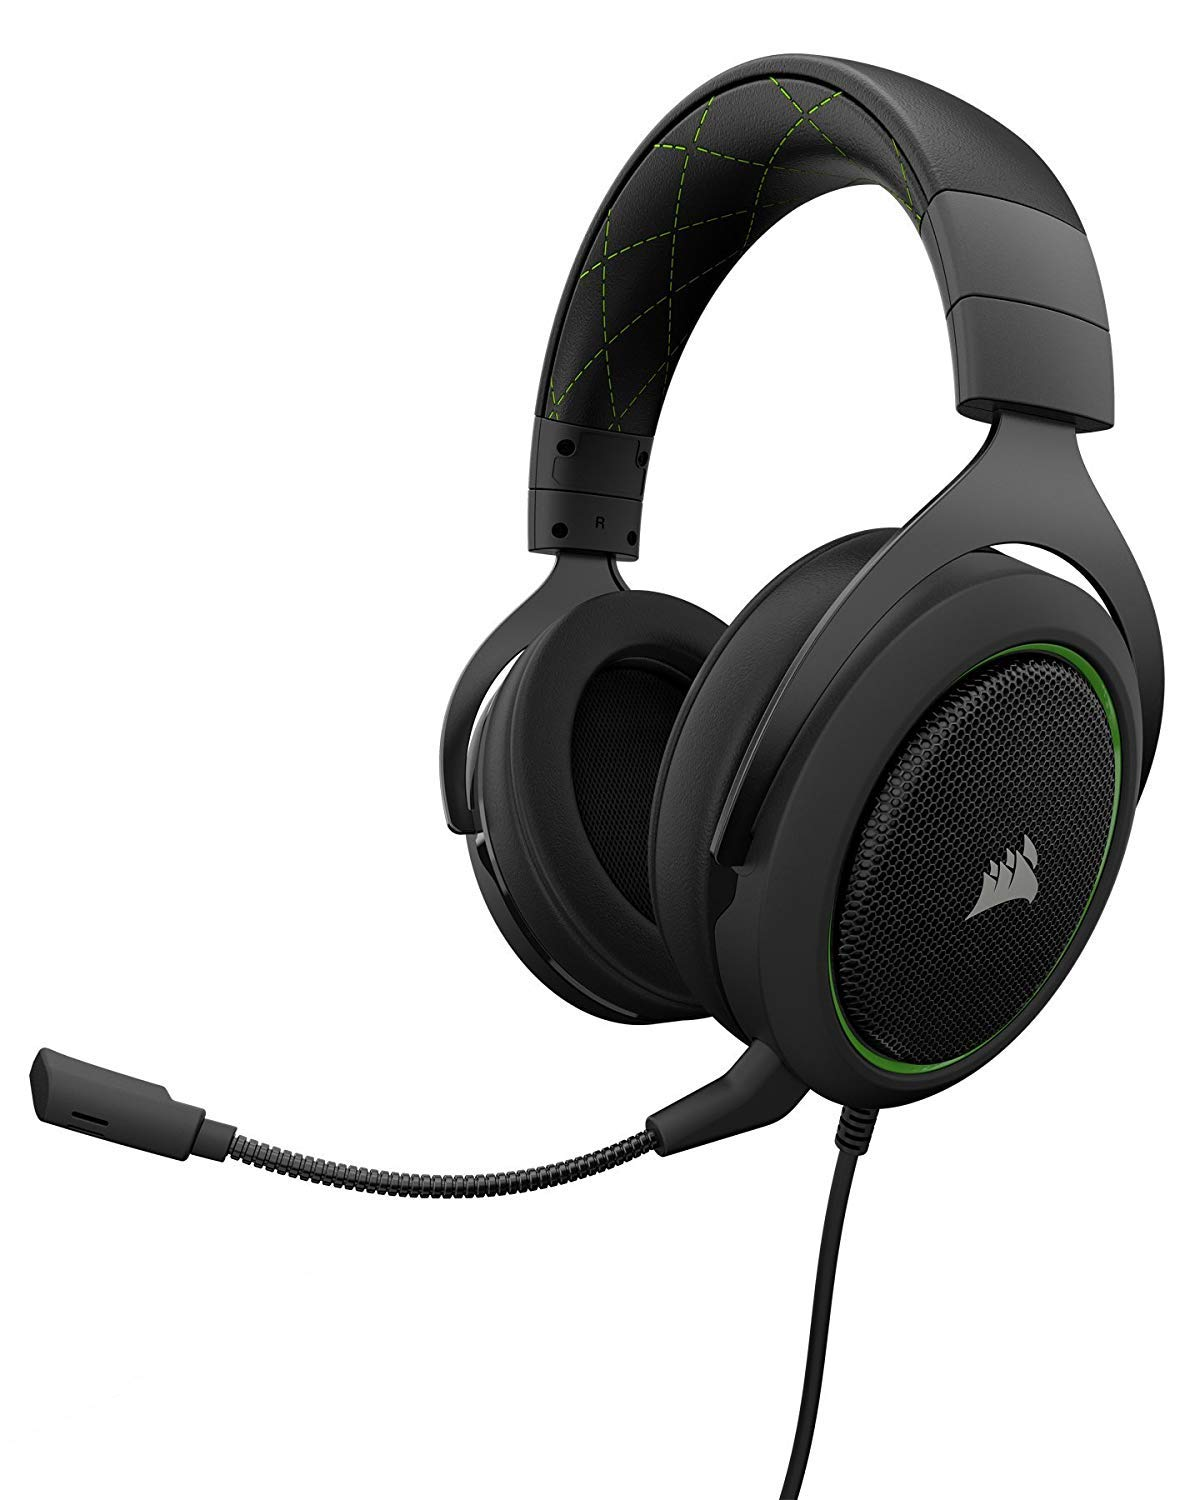 Corsair CA-9011173-NA HS60 Surround Gaming Headset, Carbon